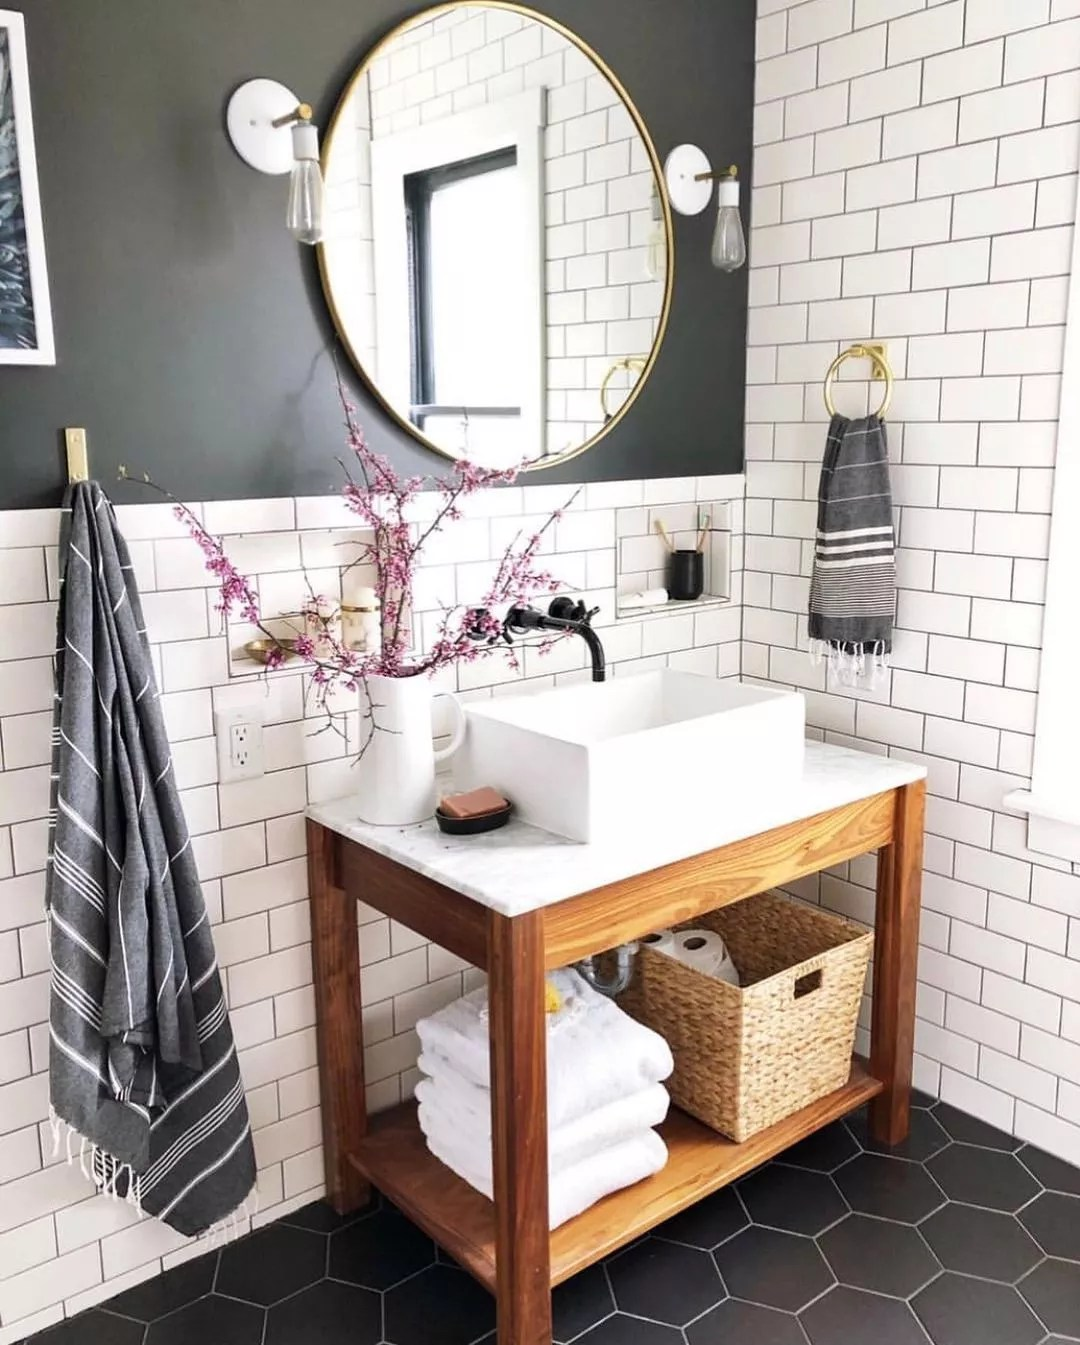 Bathroom with gray VOC-free paint. Photo by Instagram user @carpendaughter